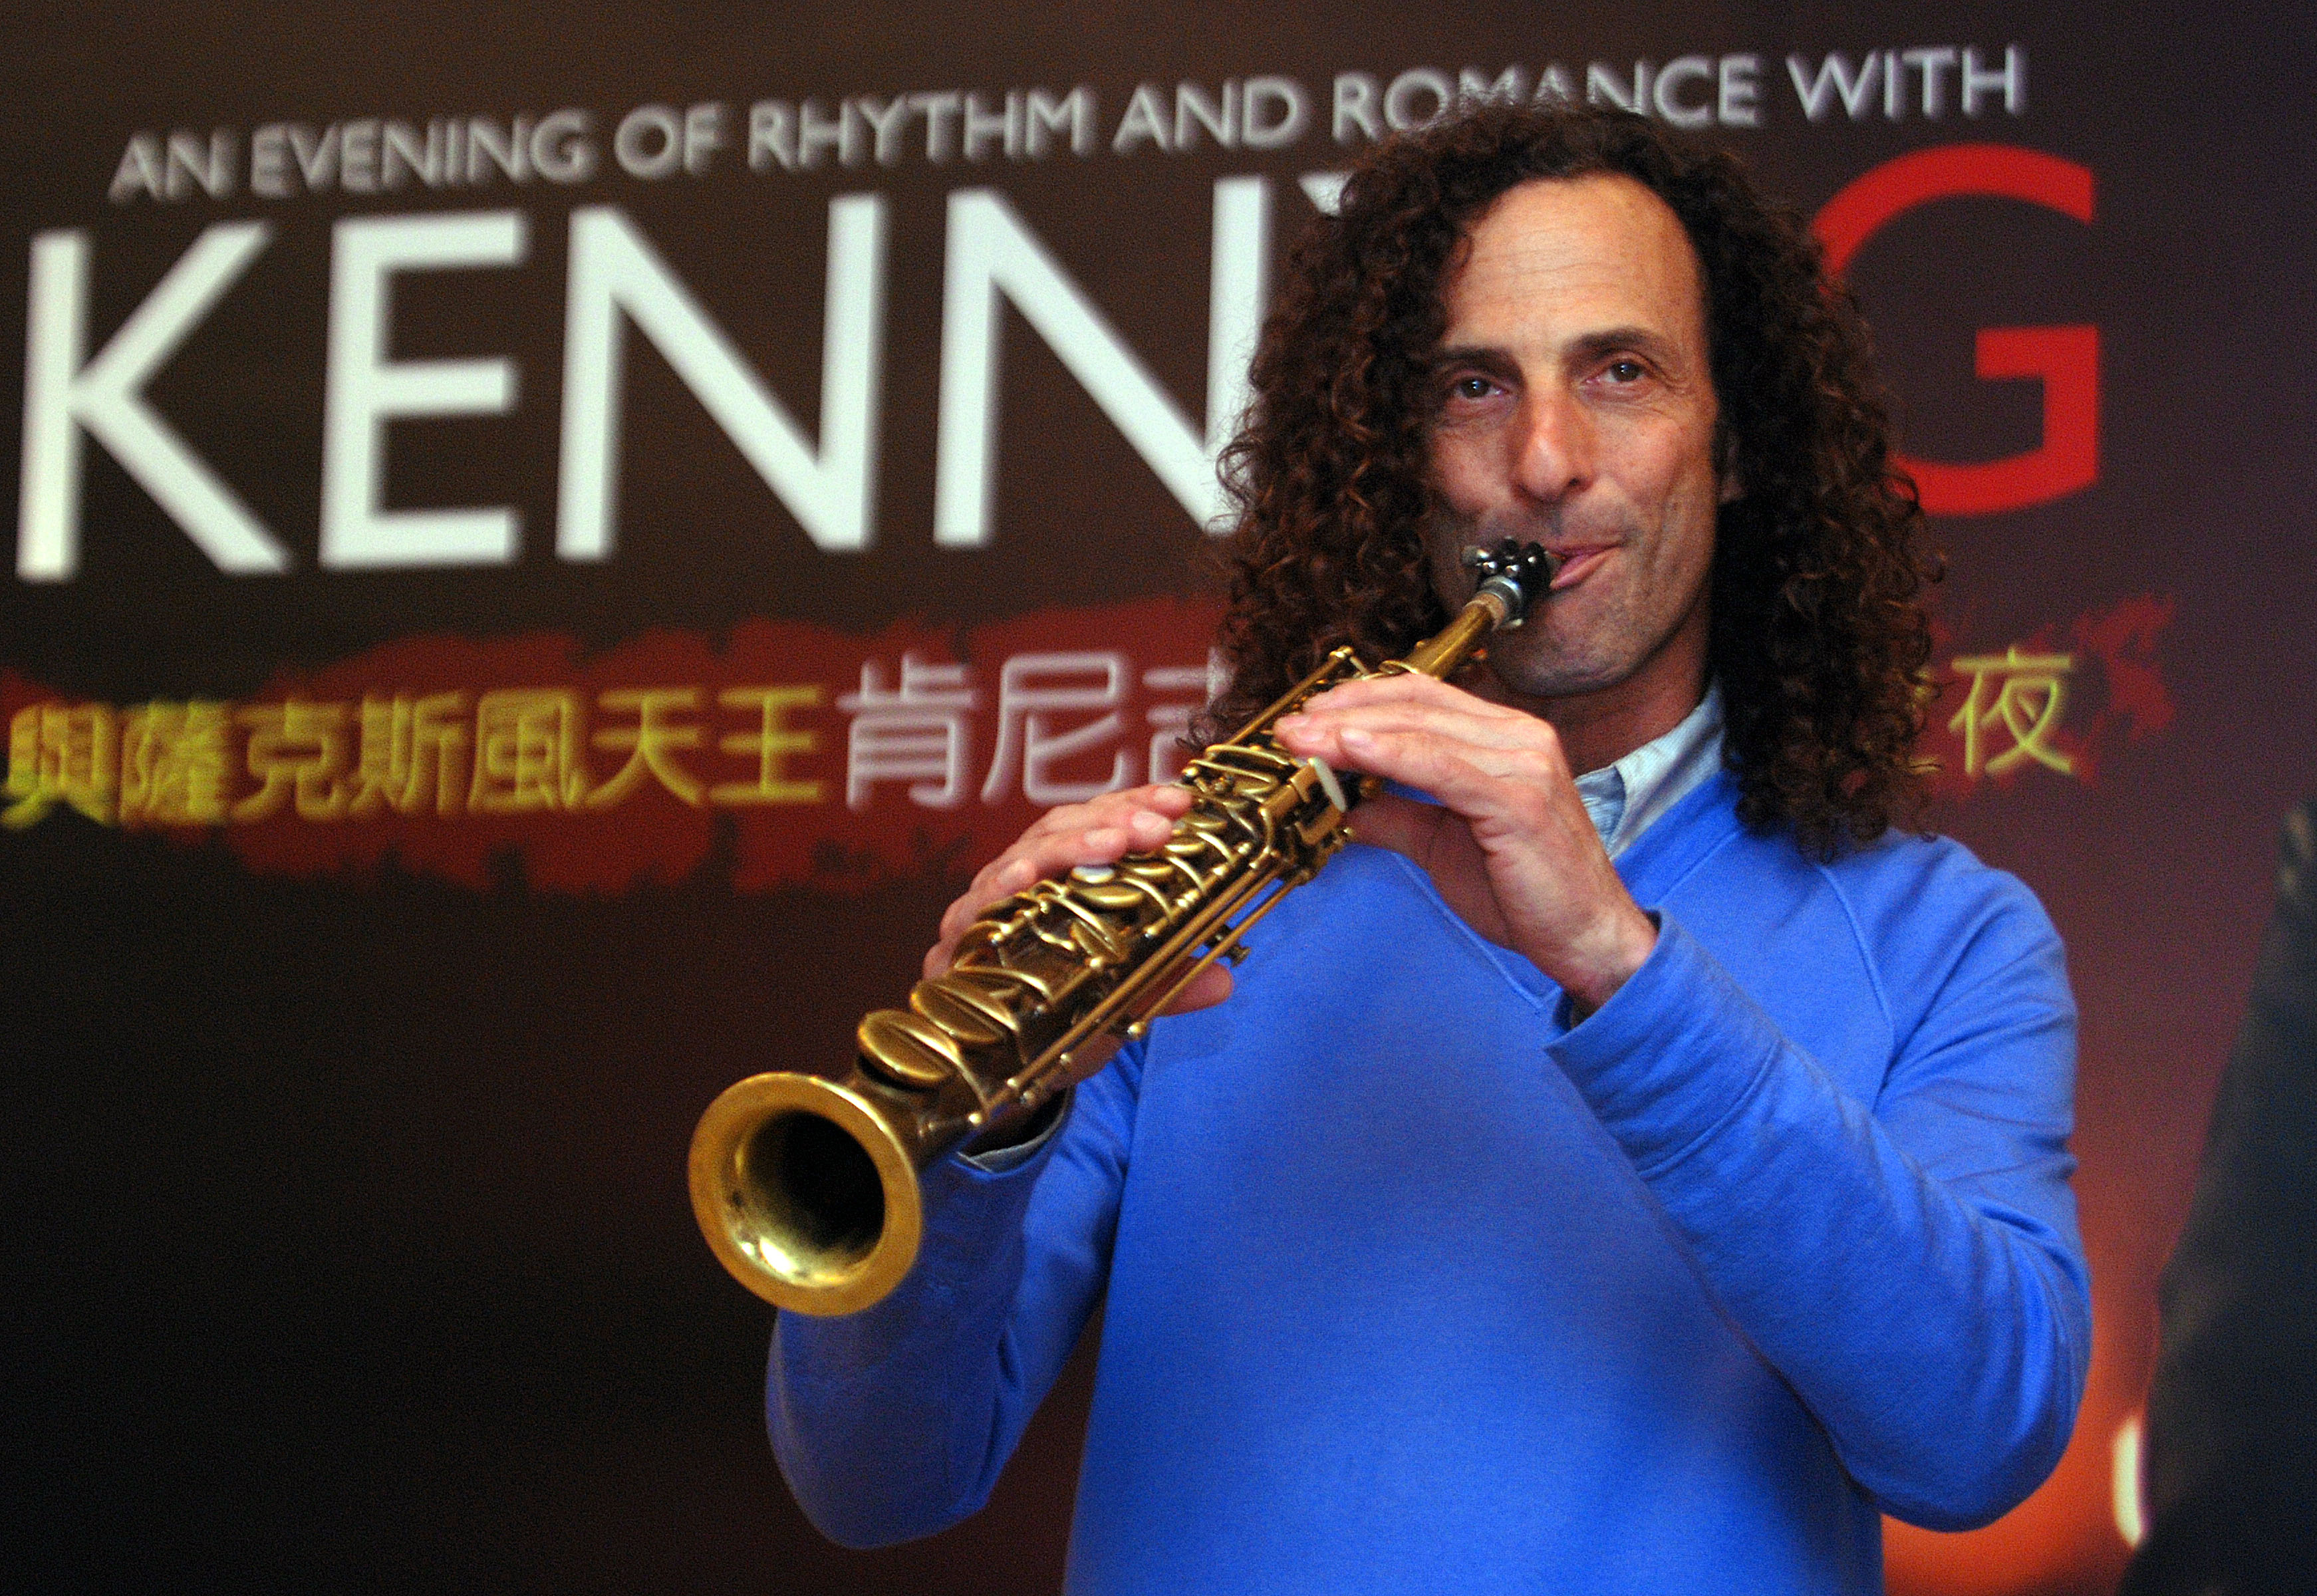 Saxophonist Kenny G performs during a media event in Taipei on May 14, 2010